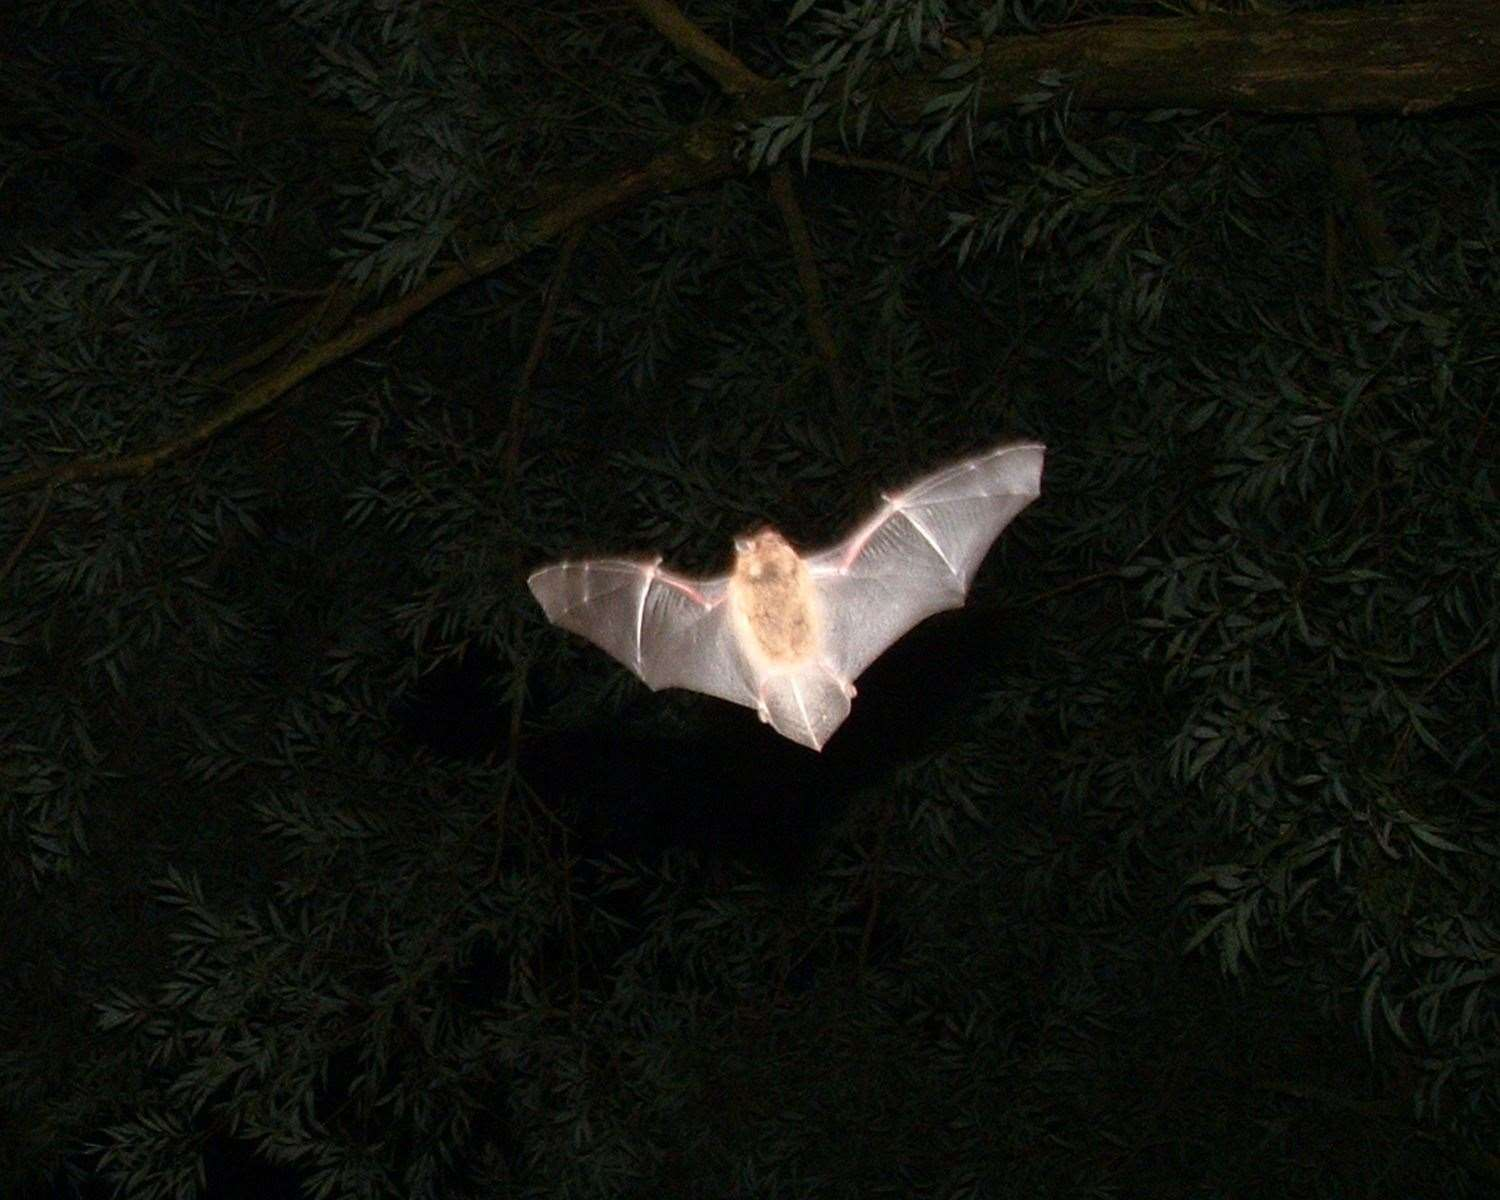 Pipistrelle bats have been reported at the site in recent years